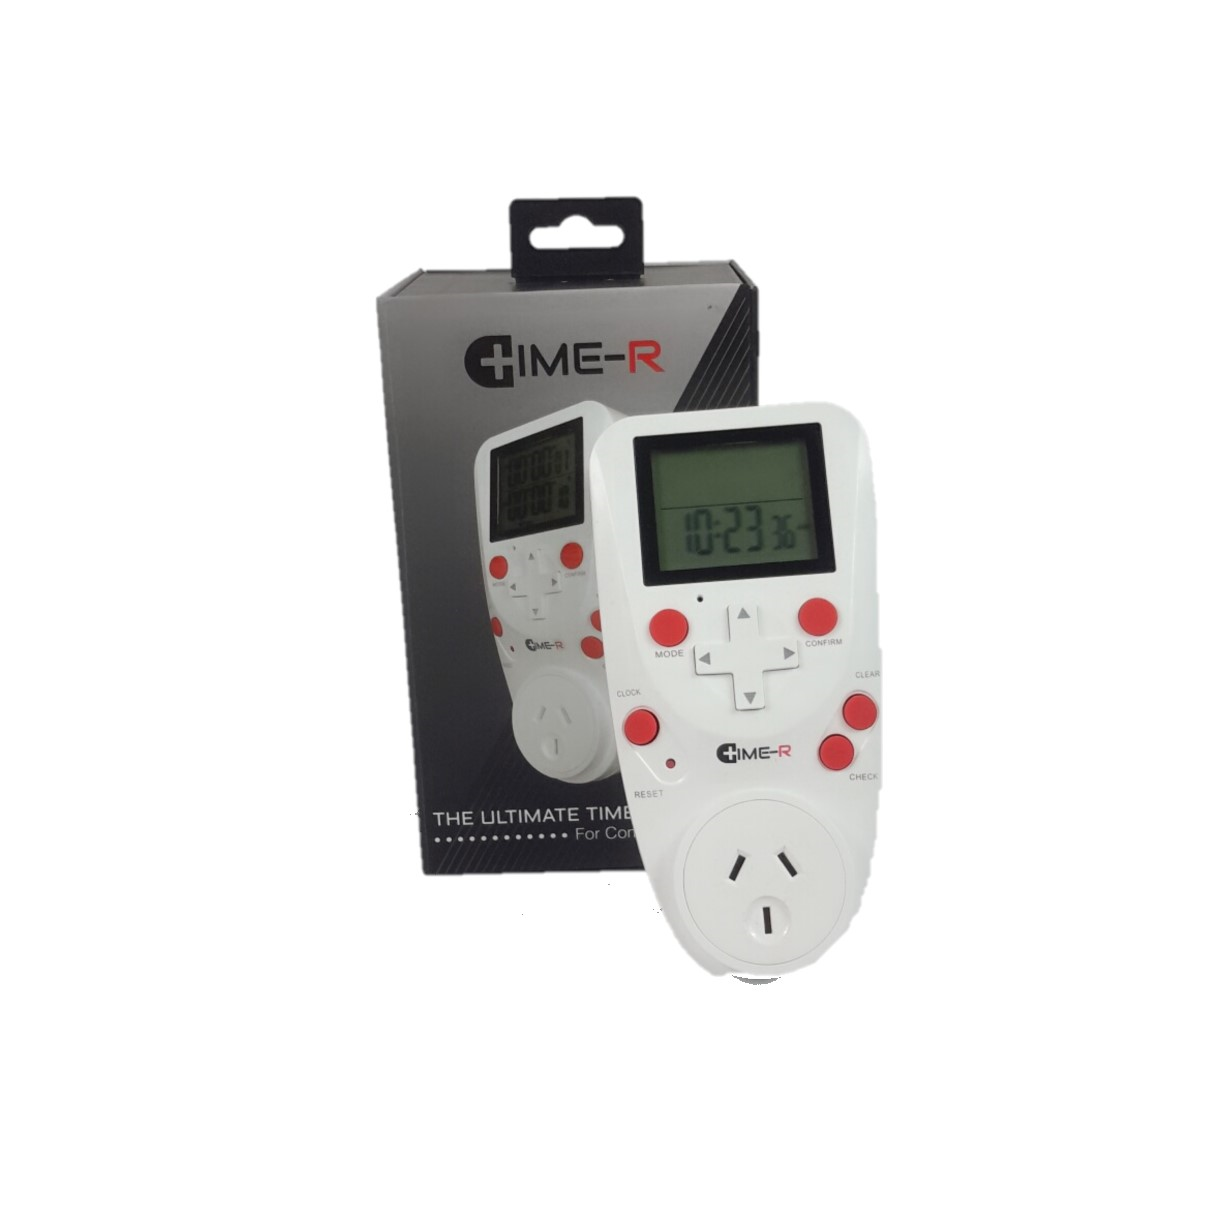 Timer-R DIGITAL TIMER with 1 second timing